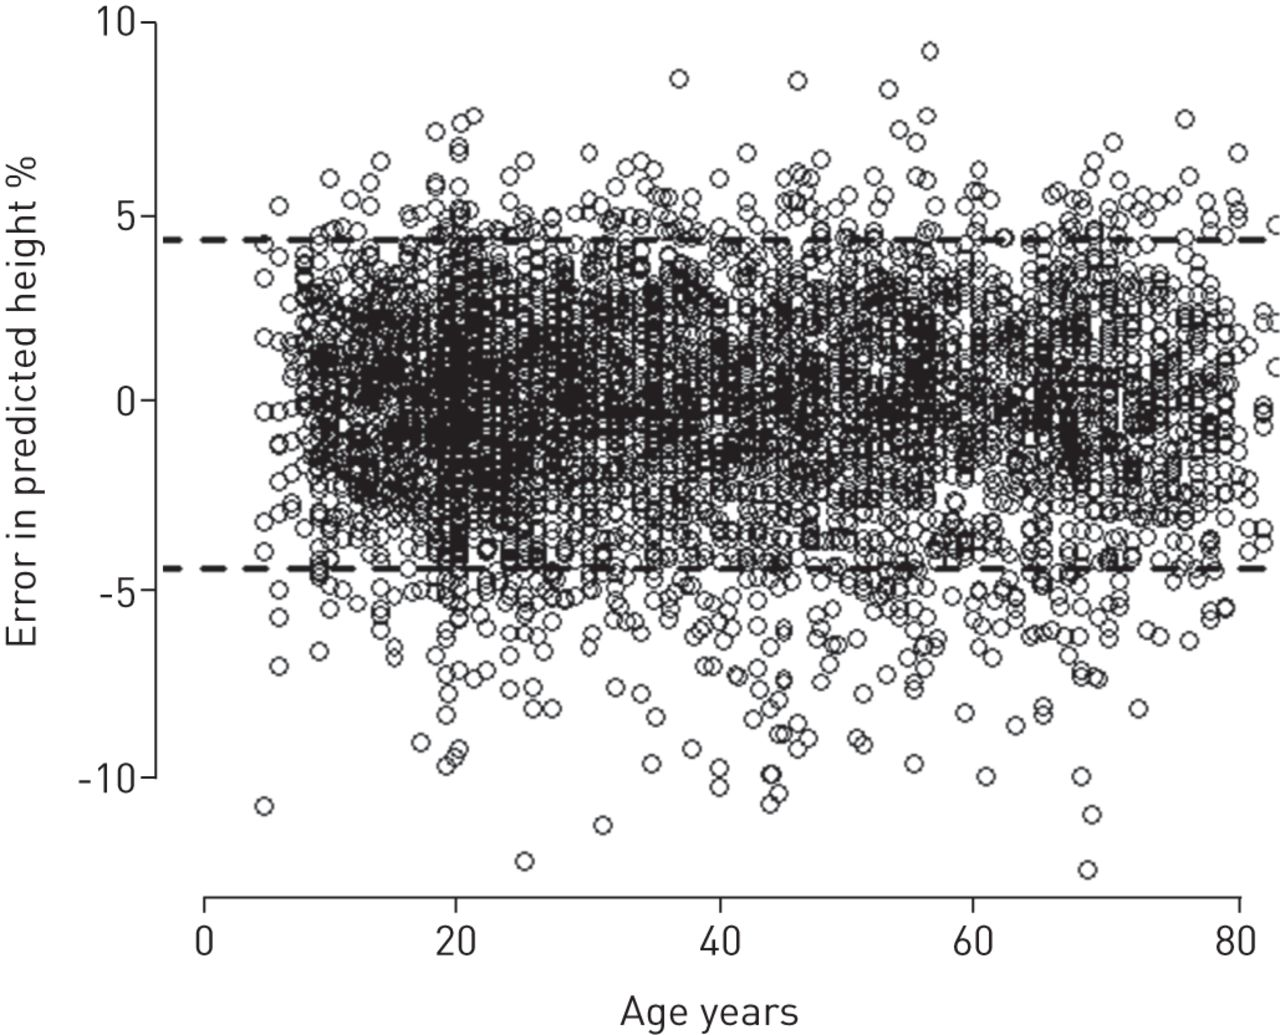 All-age relationship between arm span and height in different ethnic